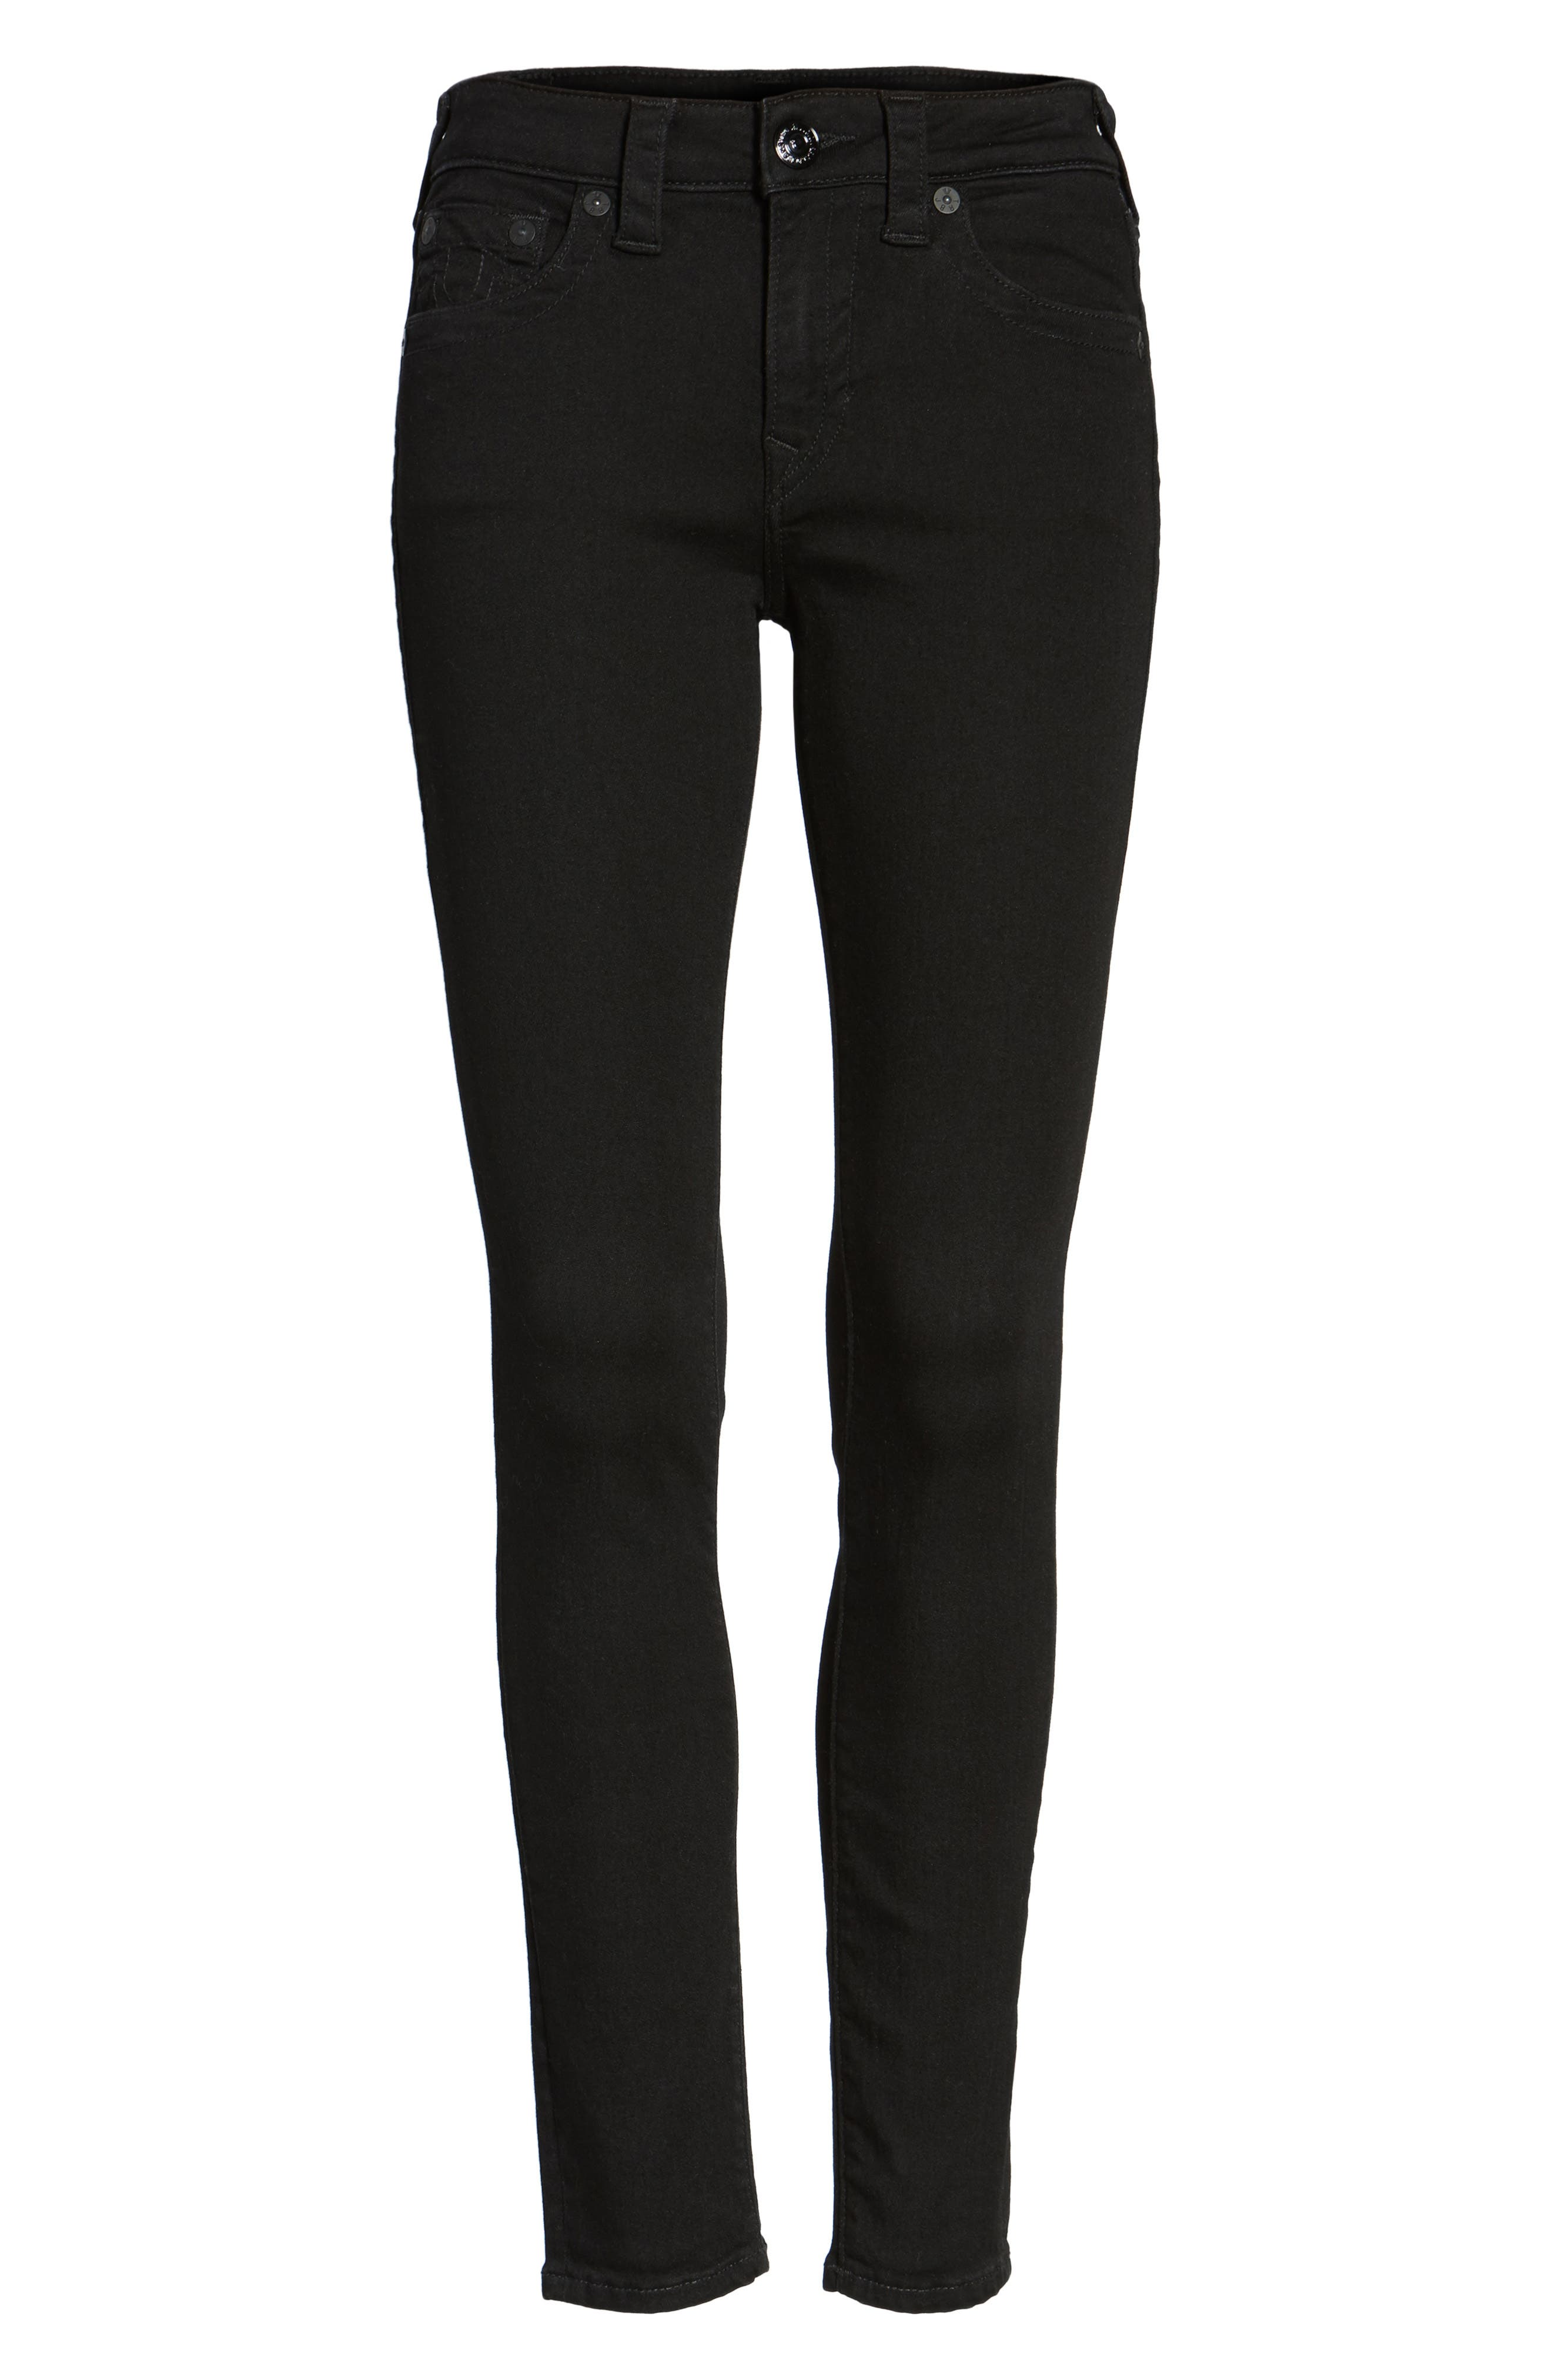 Jennie Curvy Skinny Jeans,                             Alternate thumbnail 5, color,